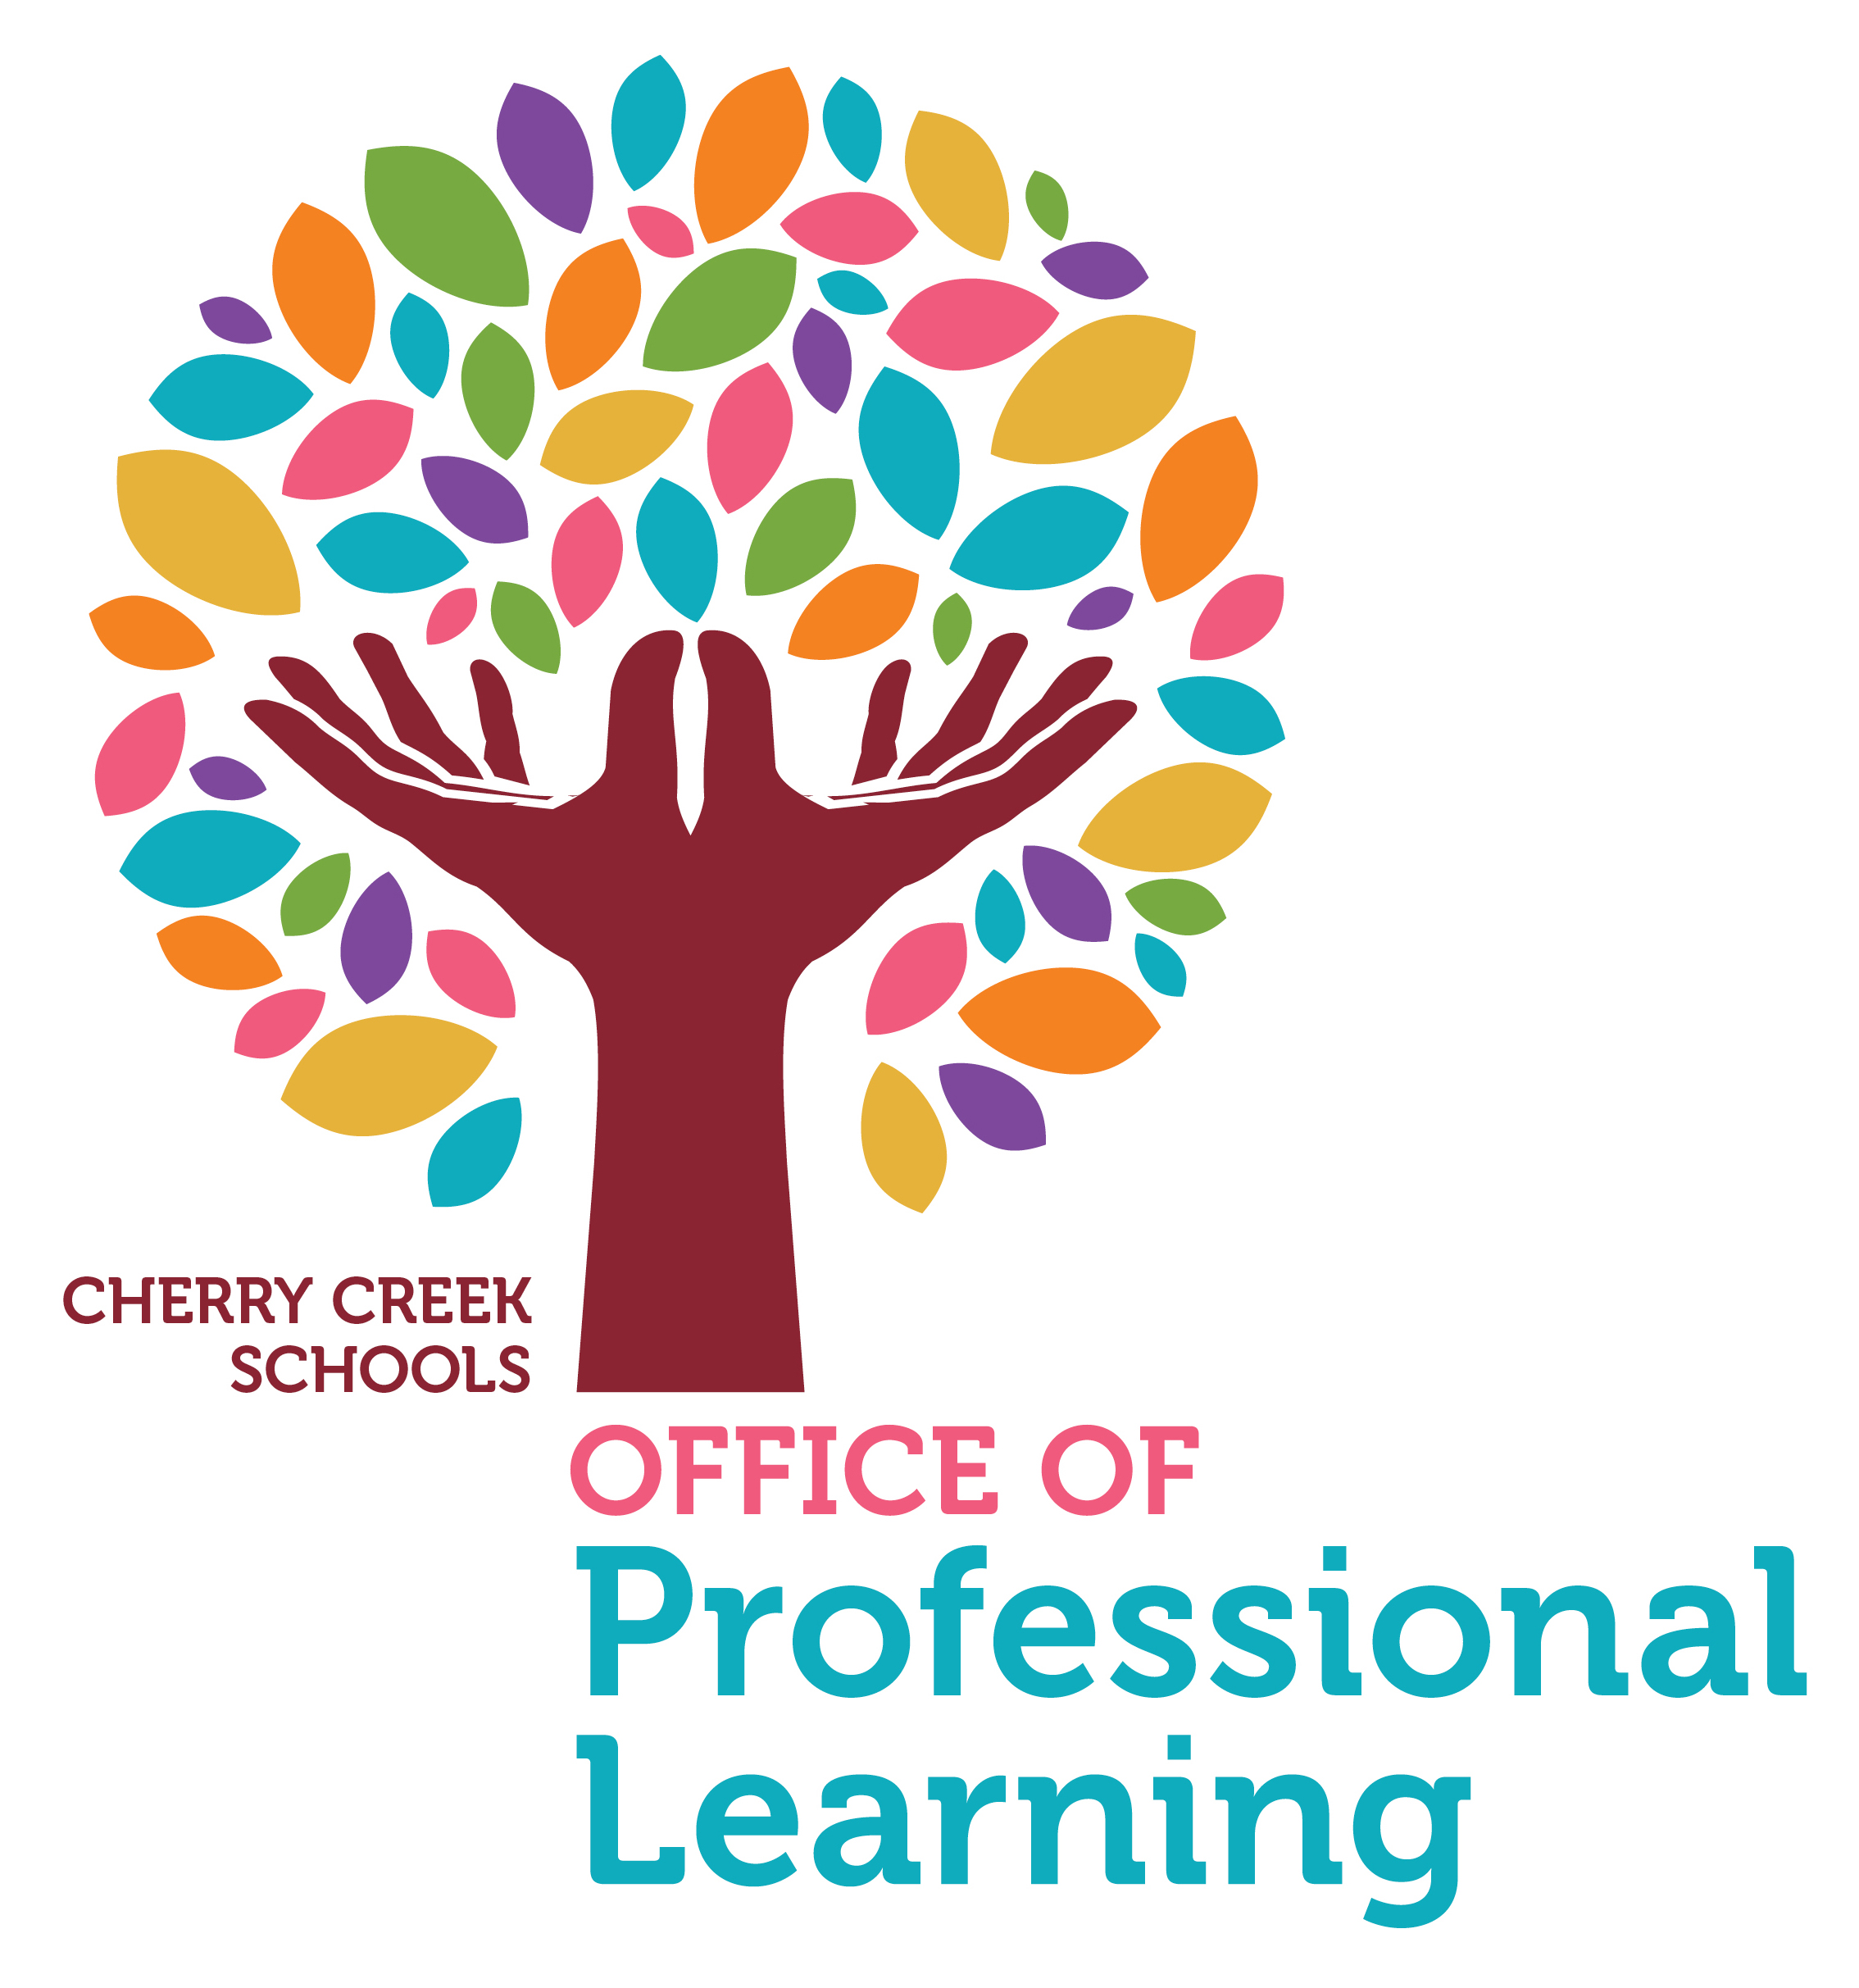 Hands opens with leaves around them. This creates a tree with the words below that say Office of Professional Learning